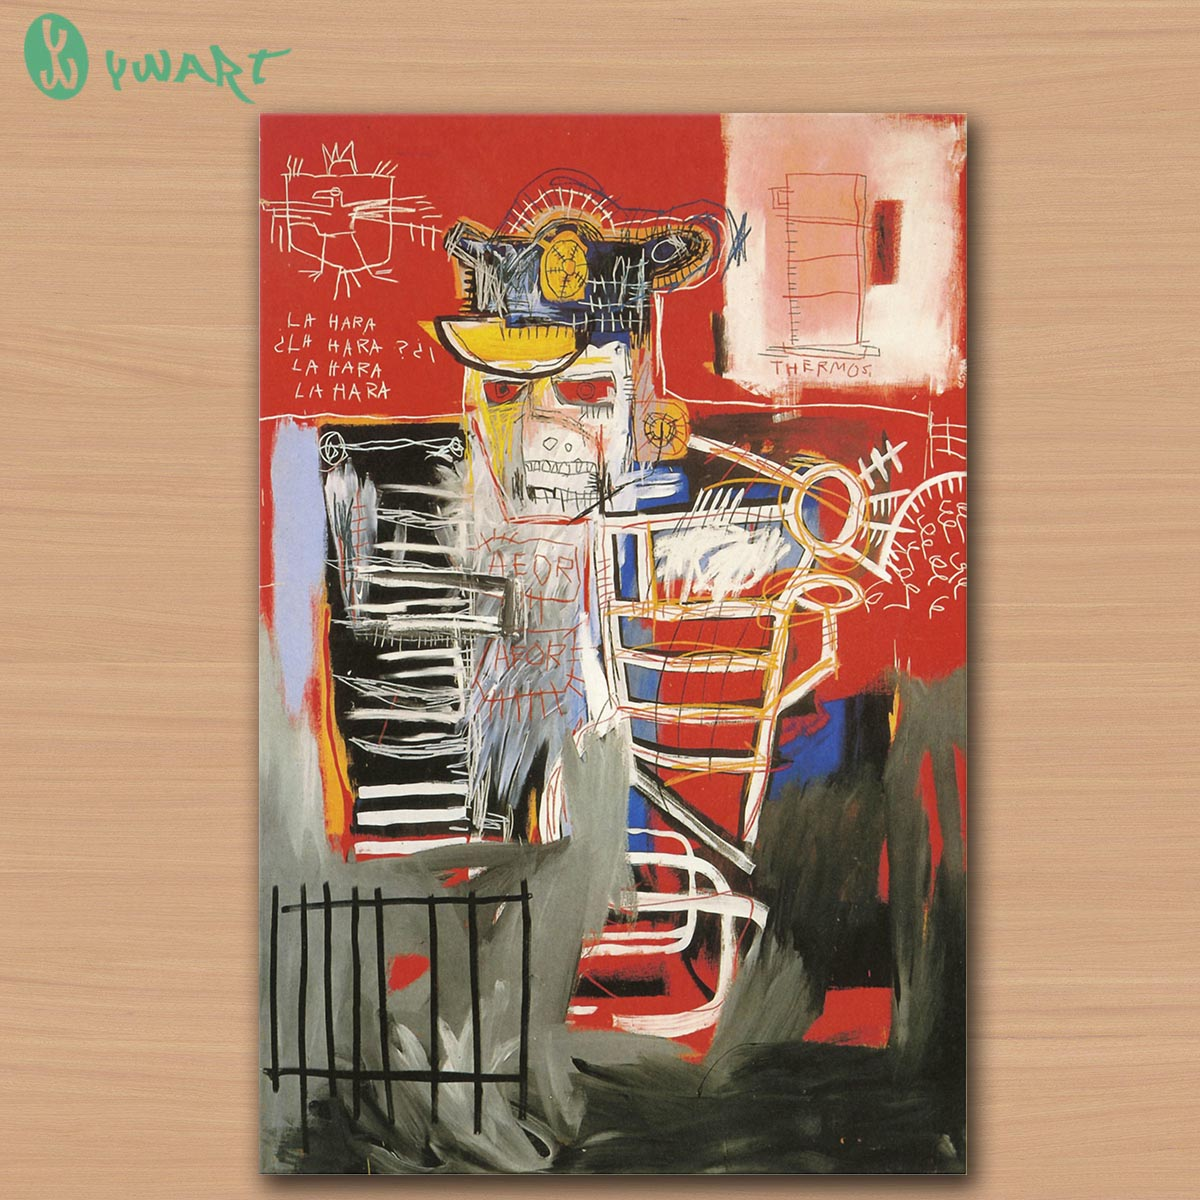 GRAFFITI ART POSTER PRINT ON CANVAS La Hara 1981 BY jean michel basquiat notary-Neo-Expressionism FOR HOME DECORATION(China (Mainland))